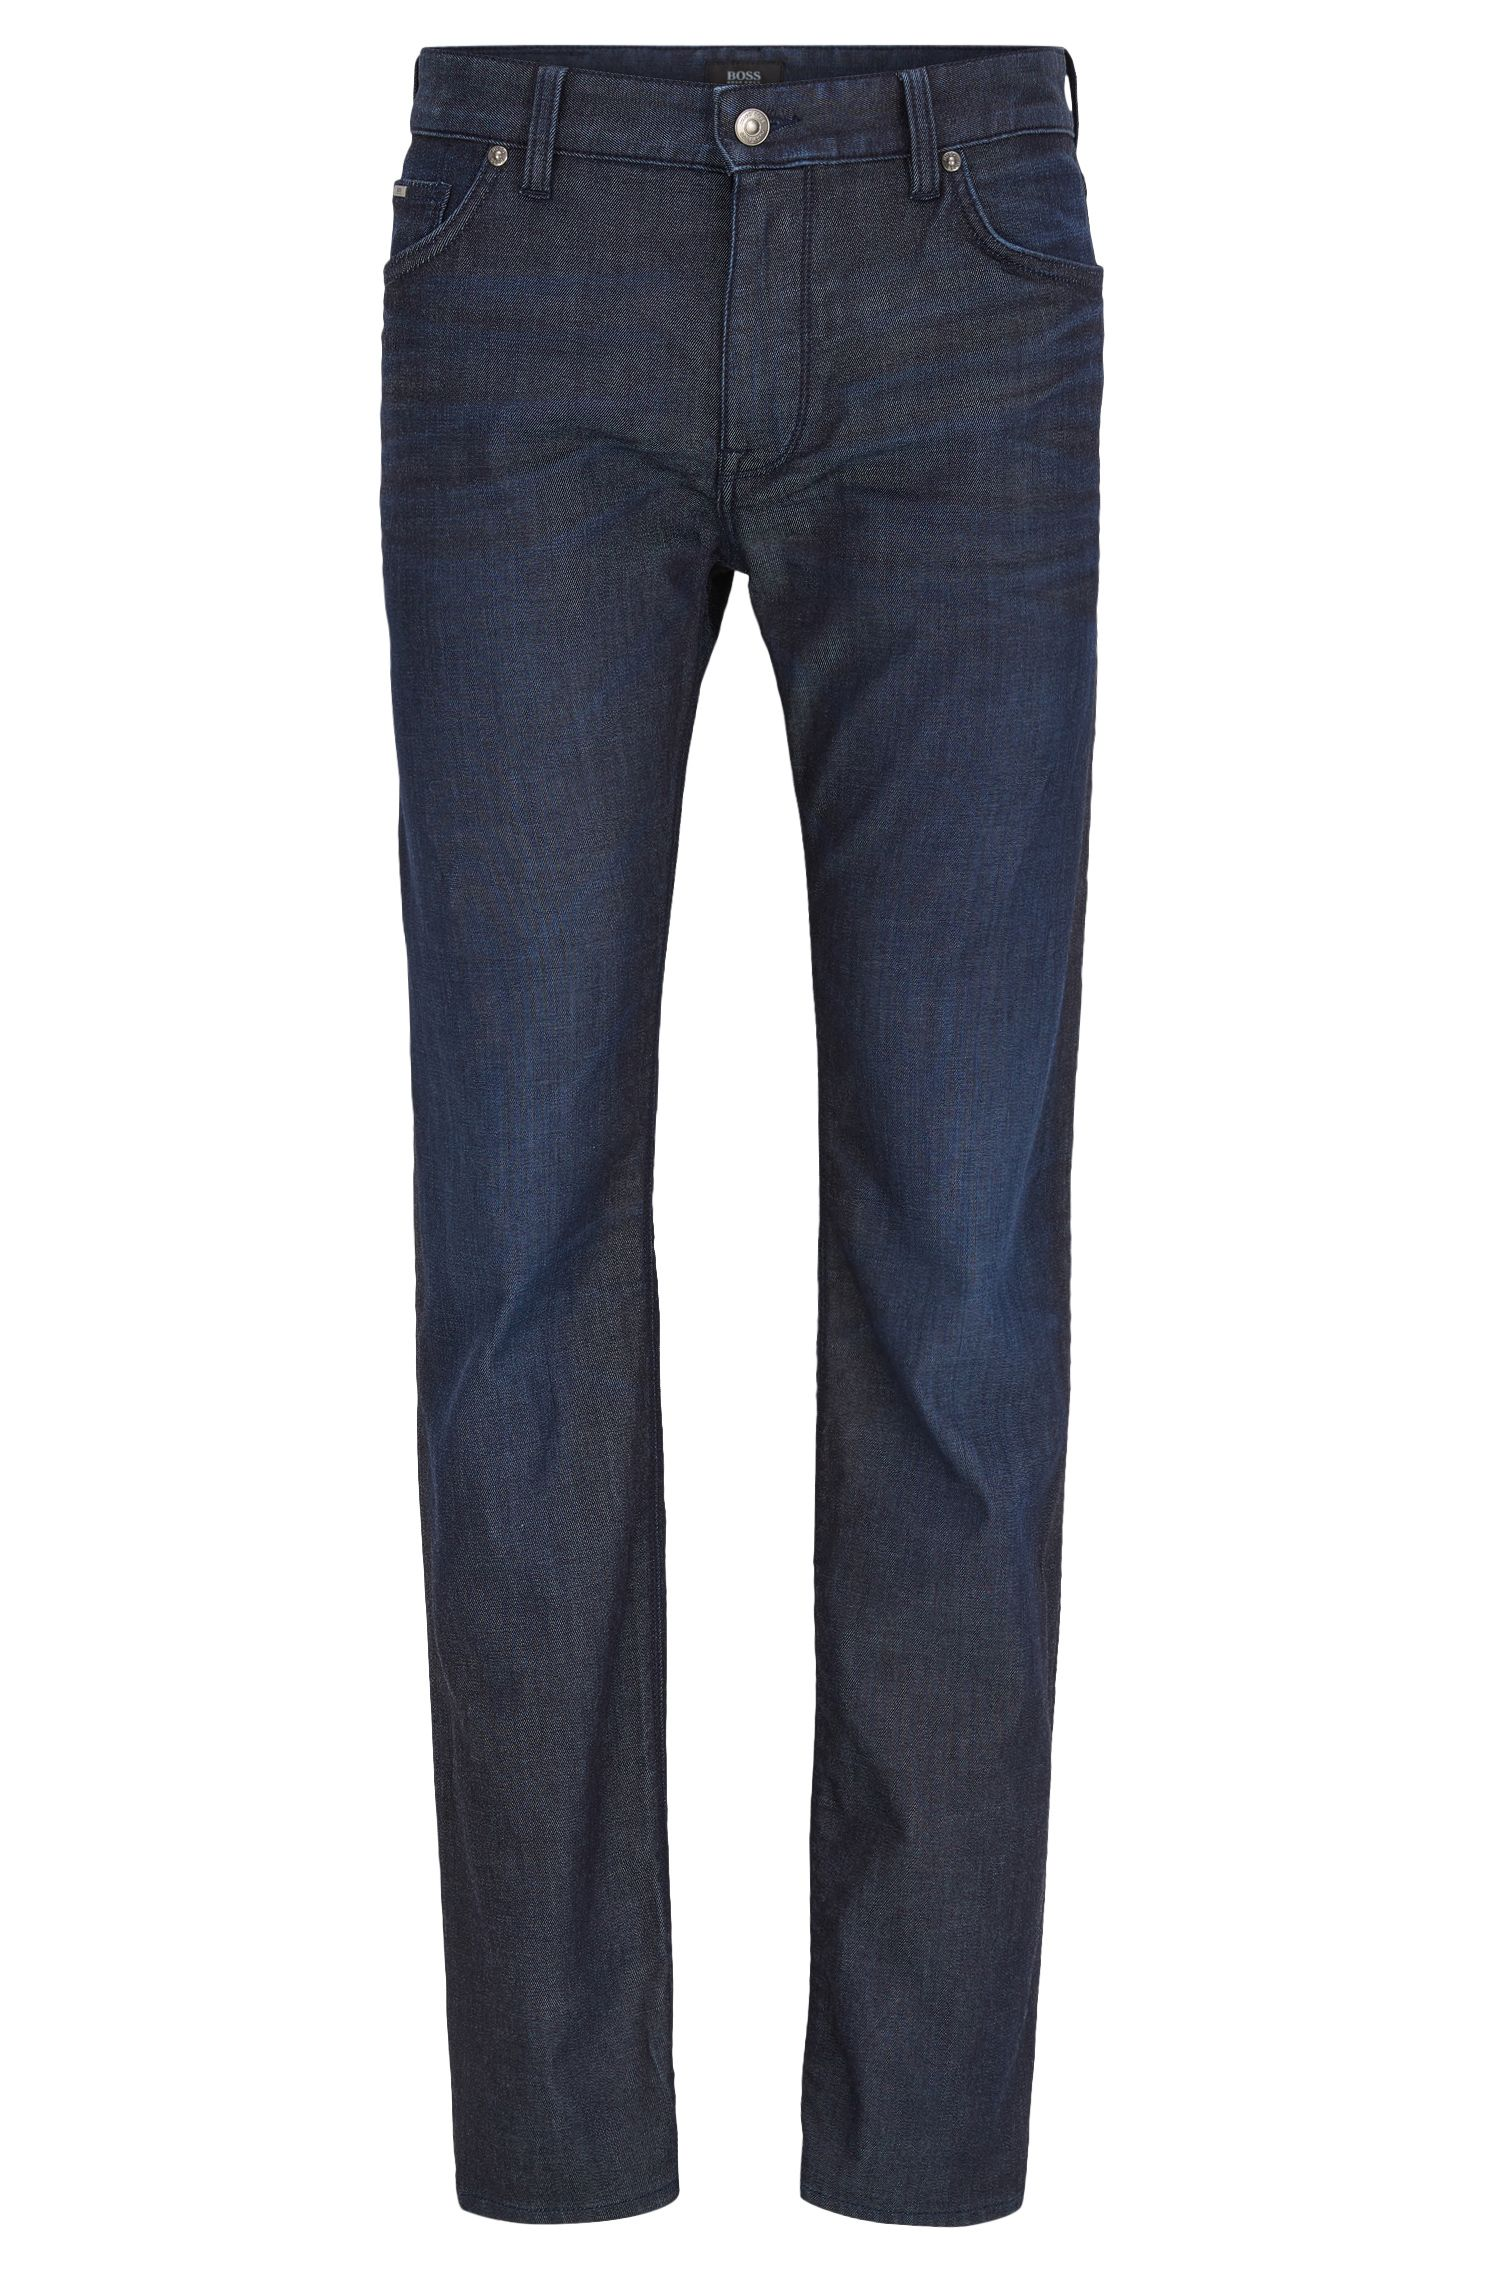 Jeans Regular Fit en denim stretch confortable